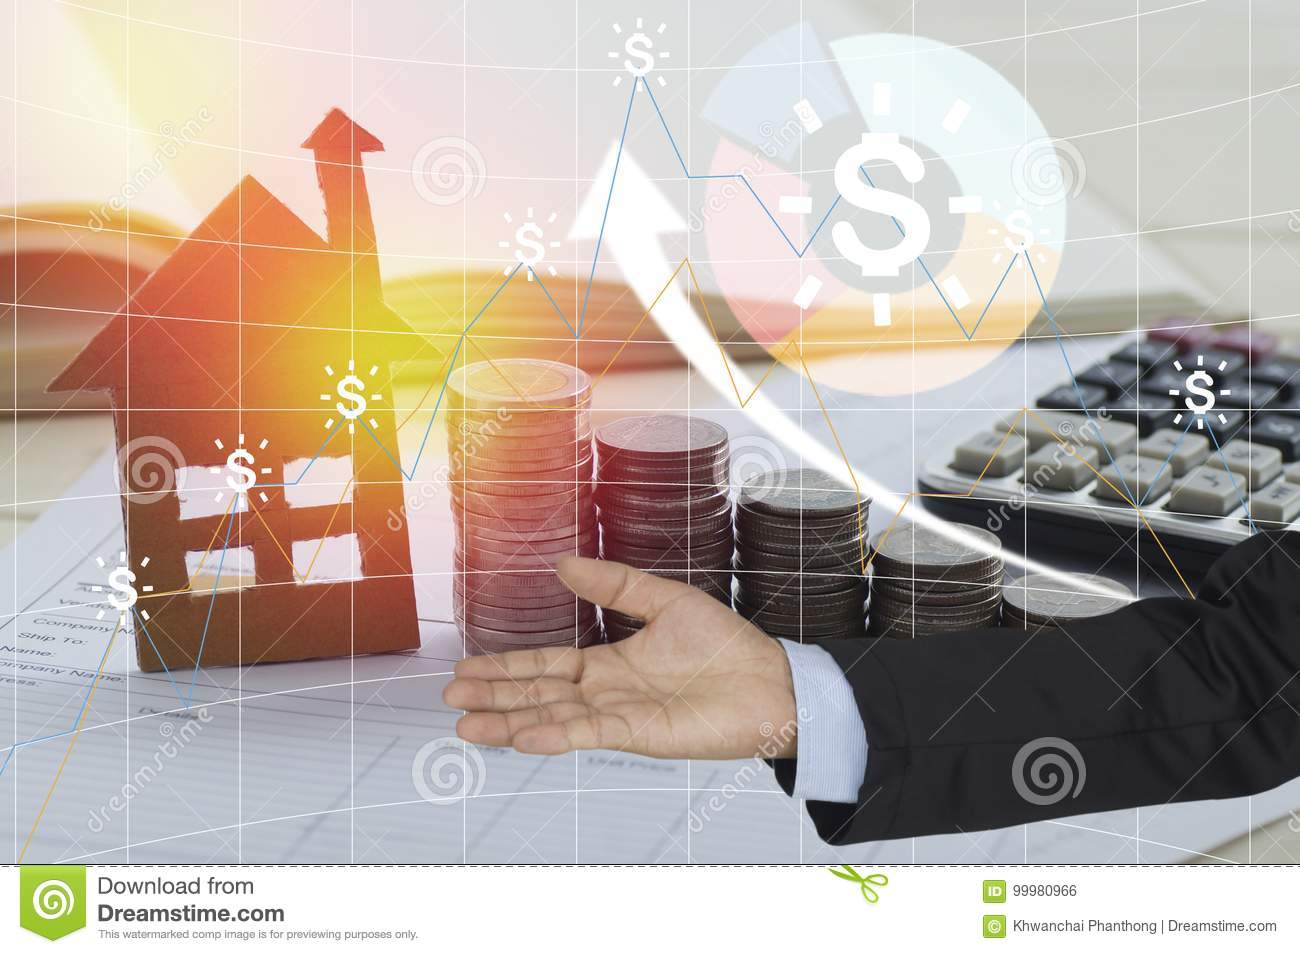 Buying home on loan or rent concept using model house, calculator.